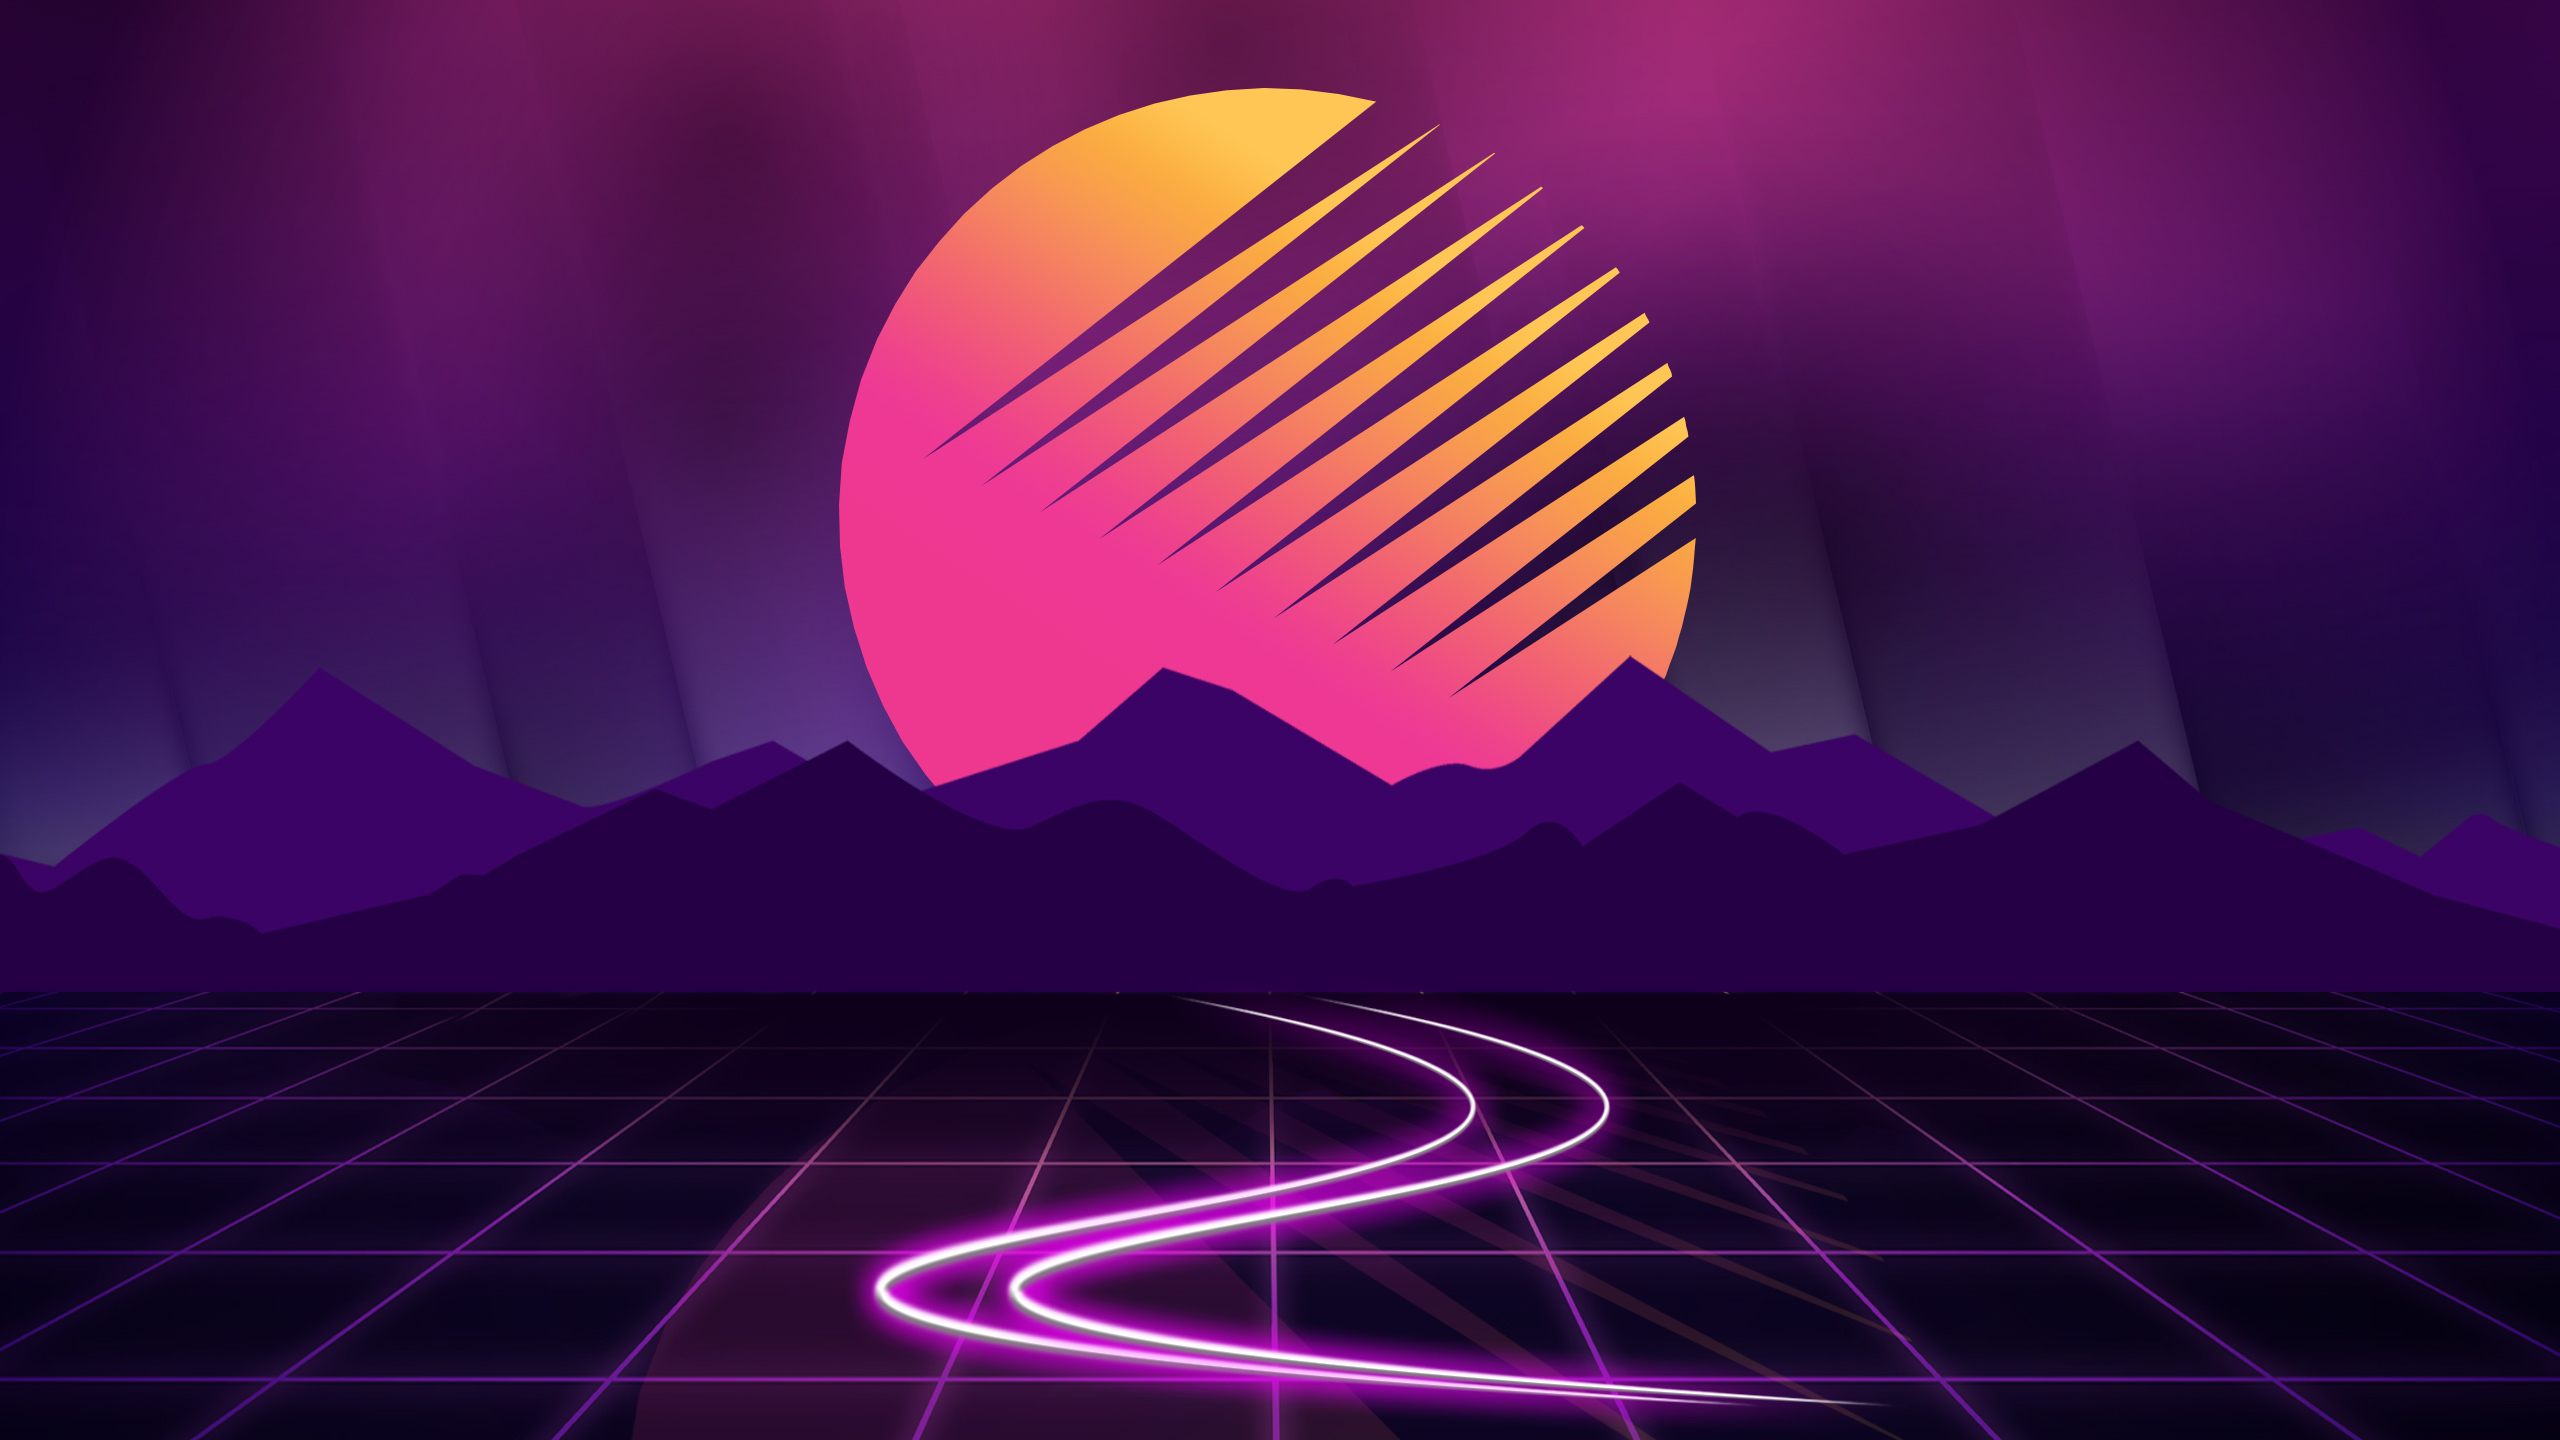 2560x1440 Outrun 1440p Resolution Hd 4k Wallpapers Images Backgrounds Photos And Pictures